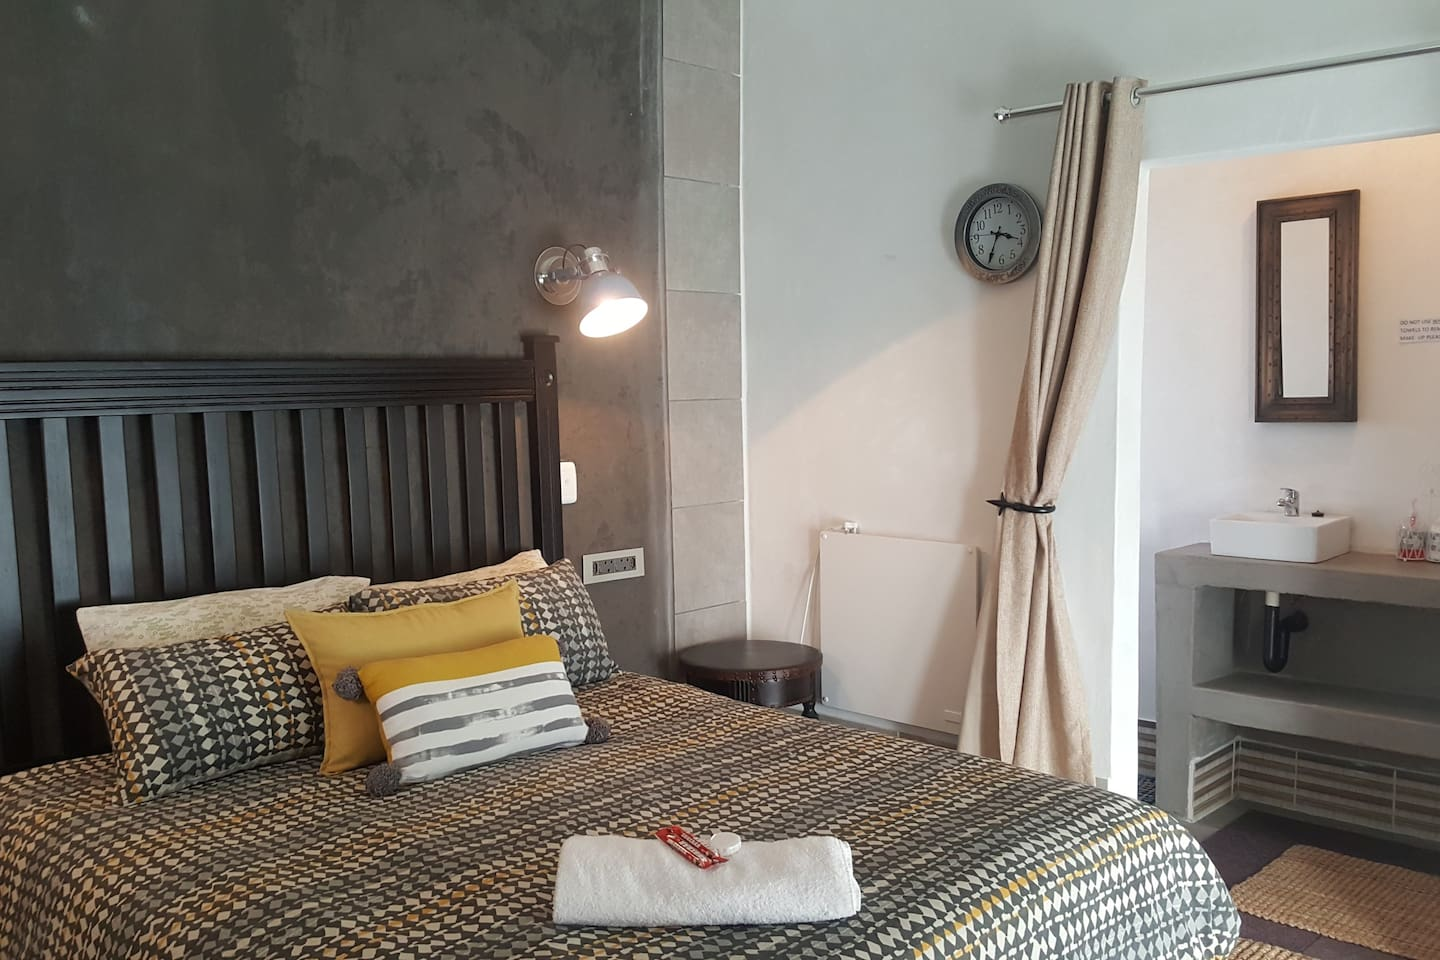 Upmarket and clean rooms. Each room has a coffee station, Dstv, bar fridge, en suite with shower